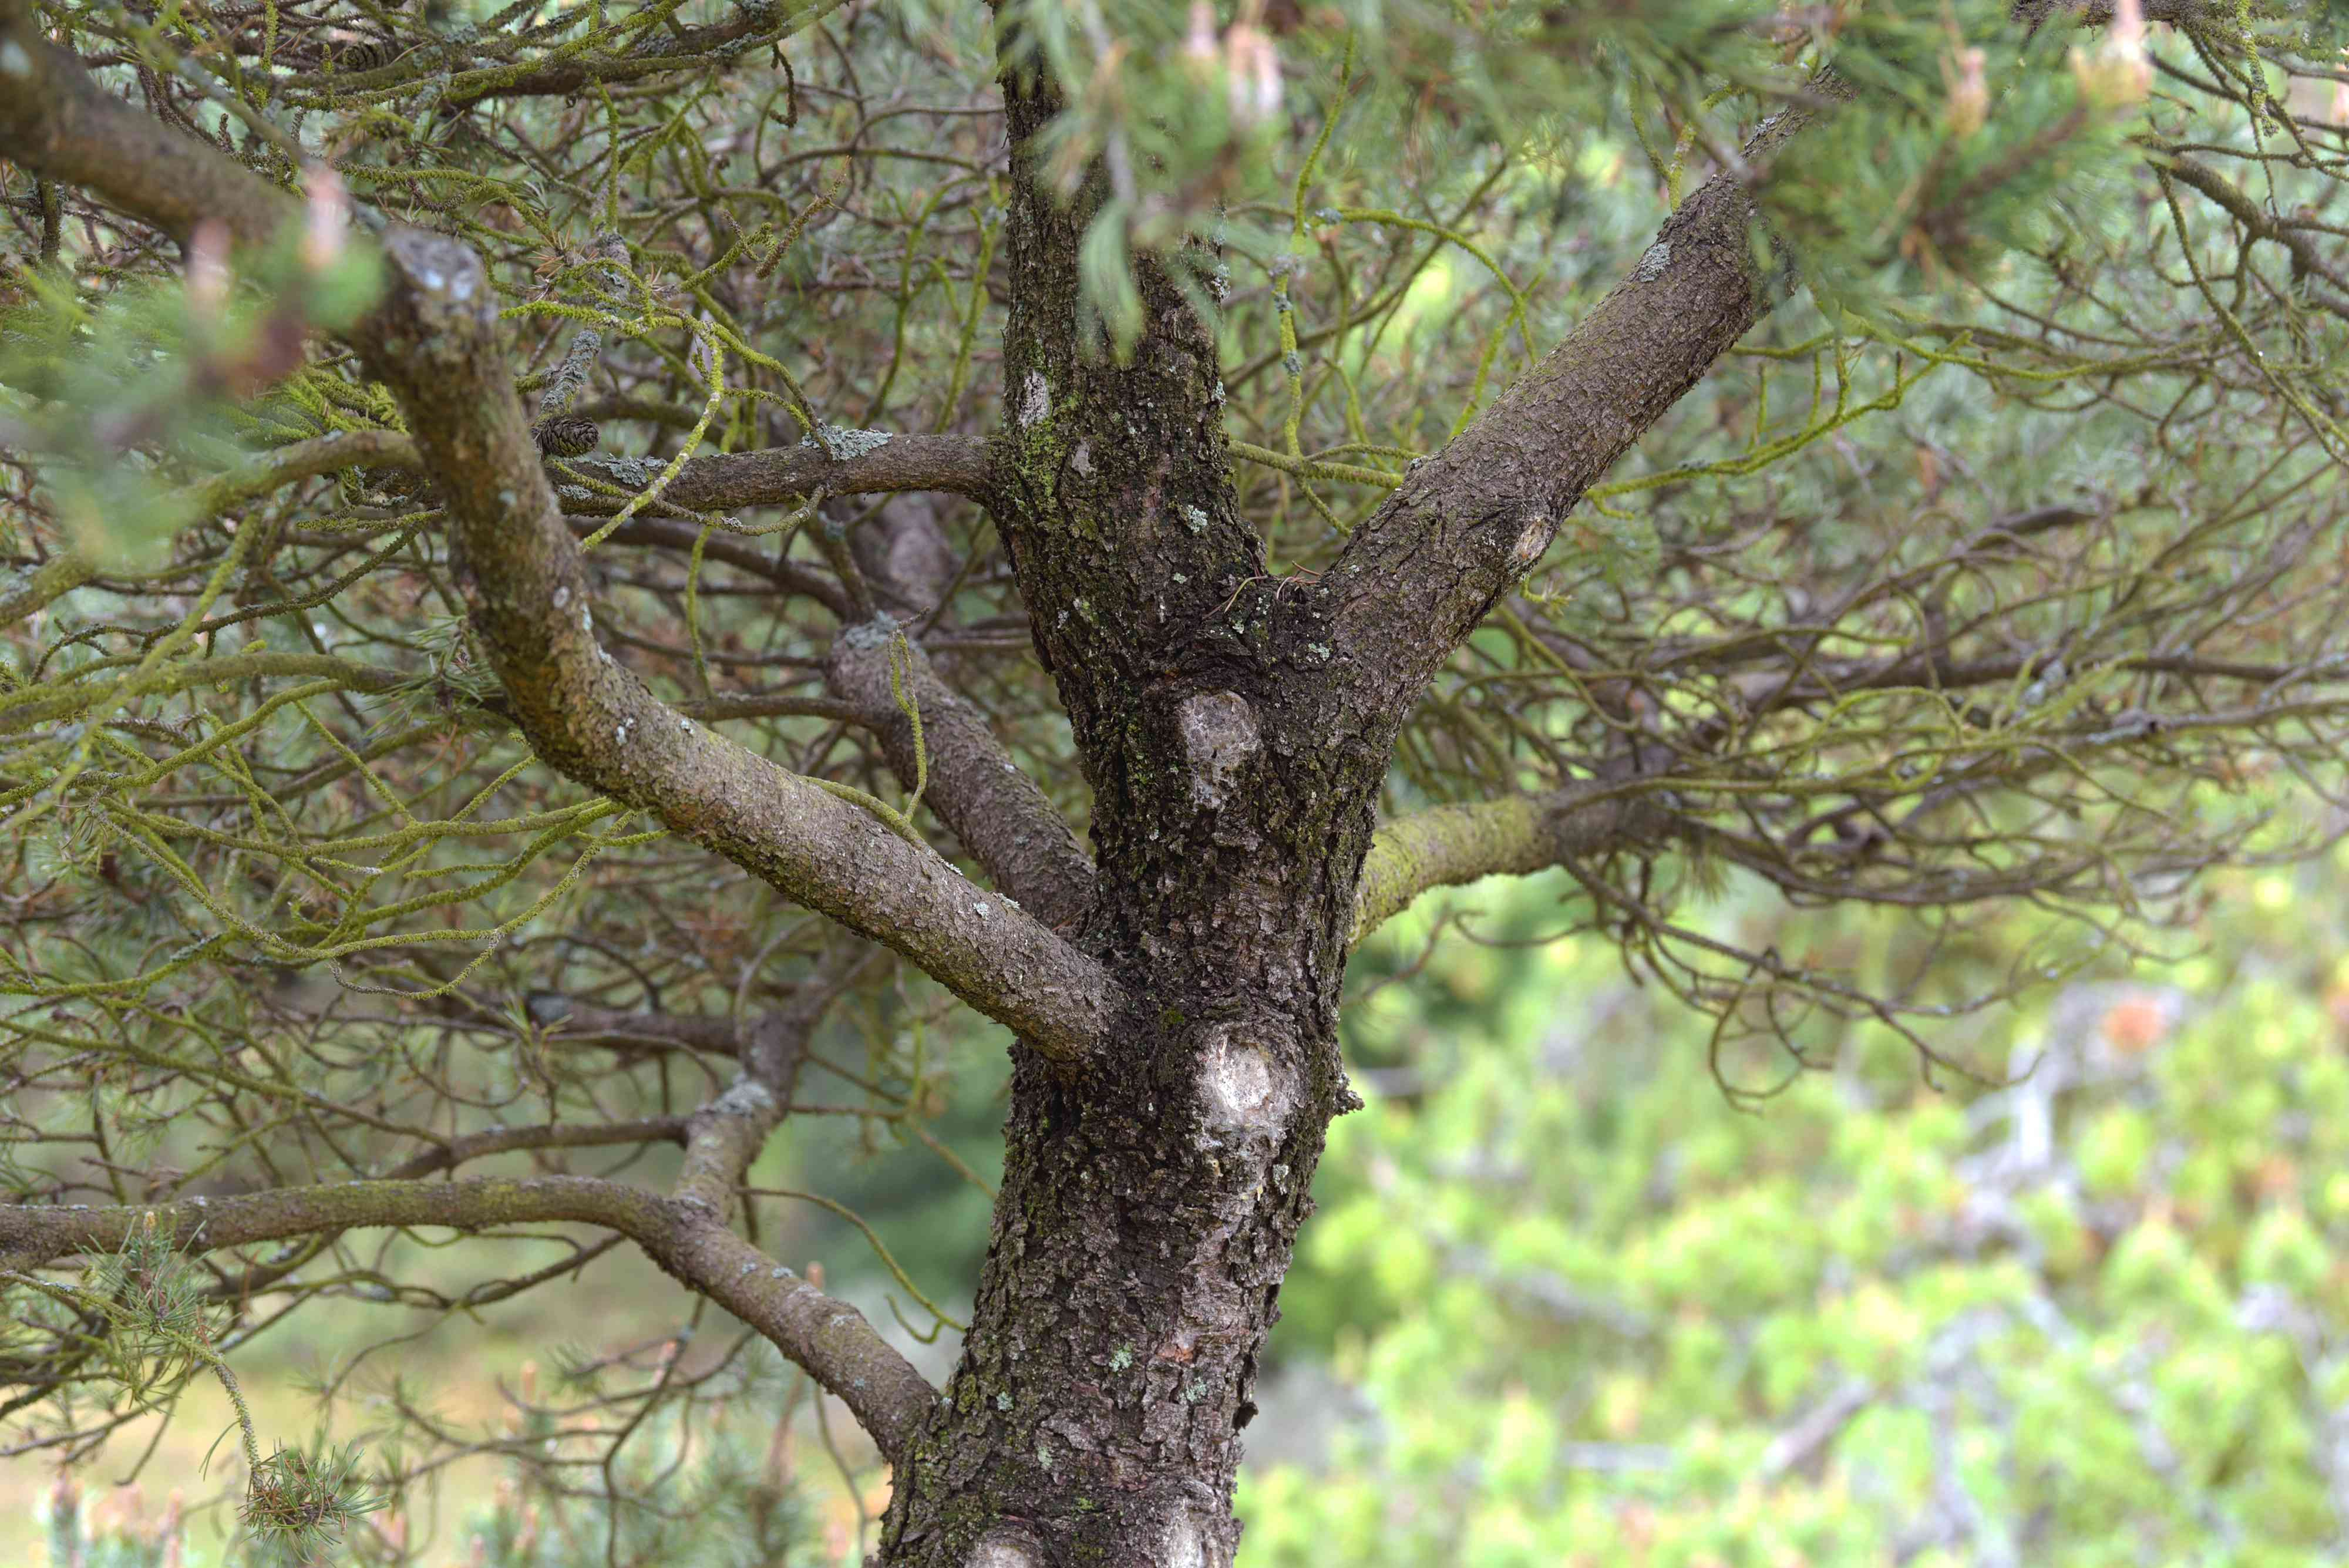 Lodgepole pint tree with dark bark on trunk and twisted branches